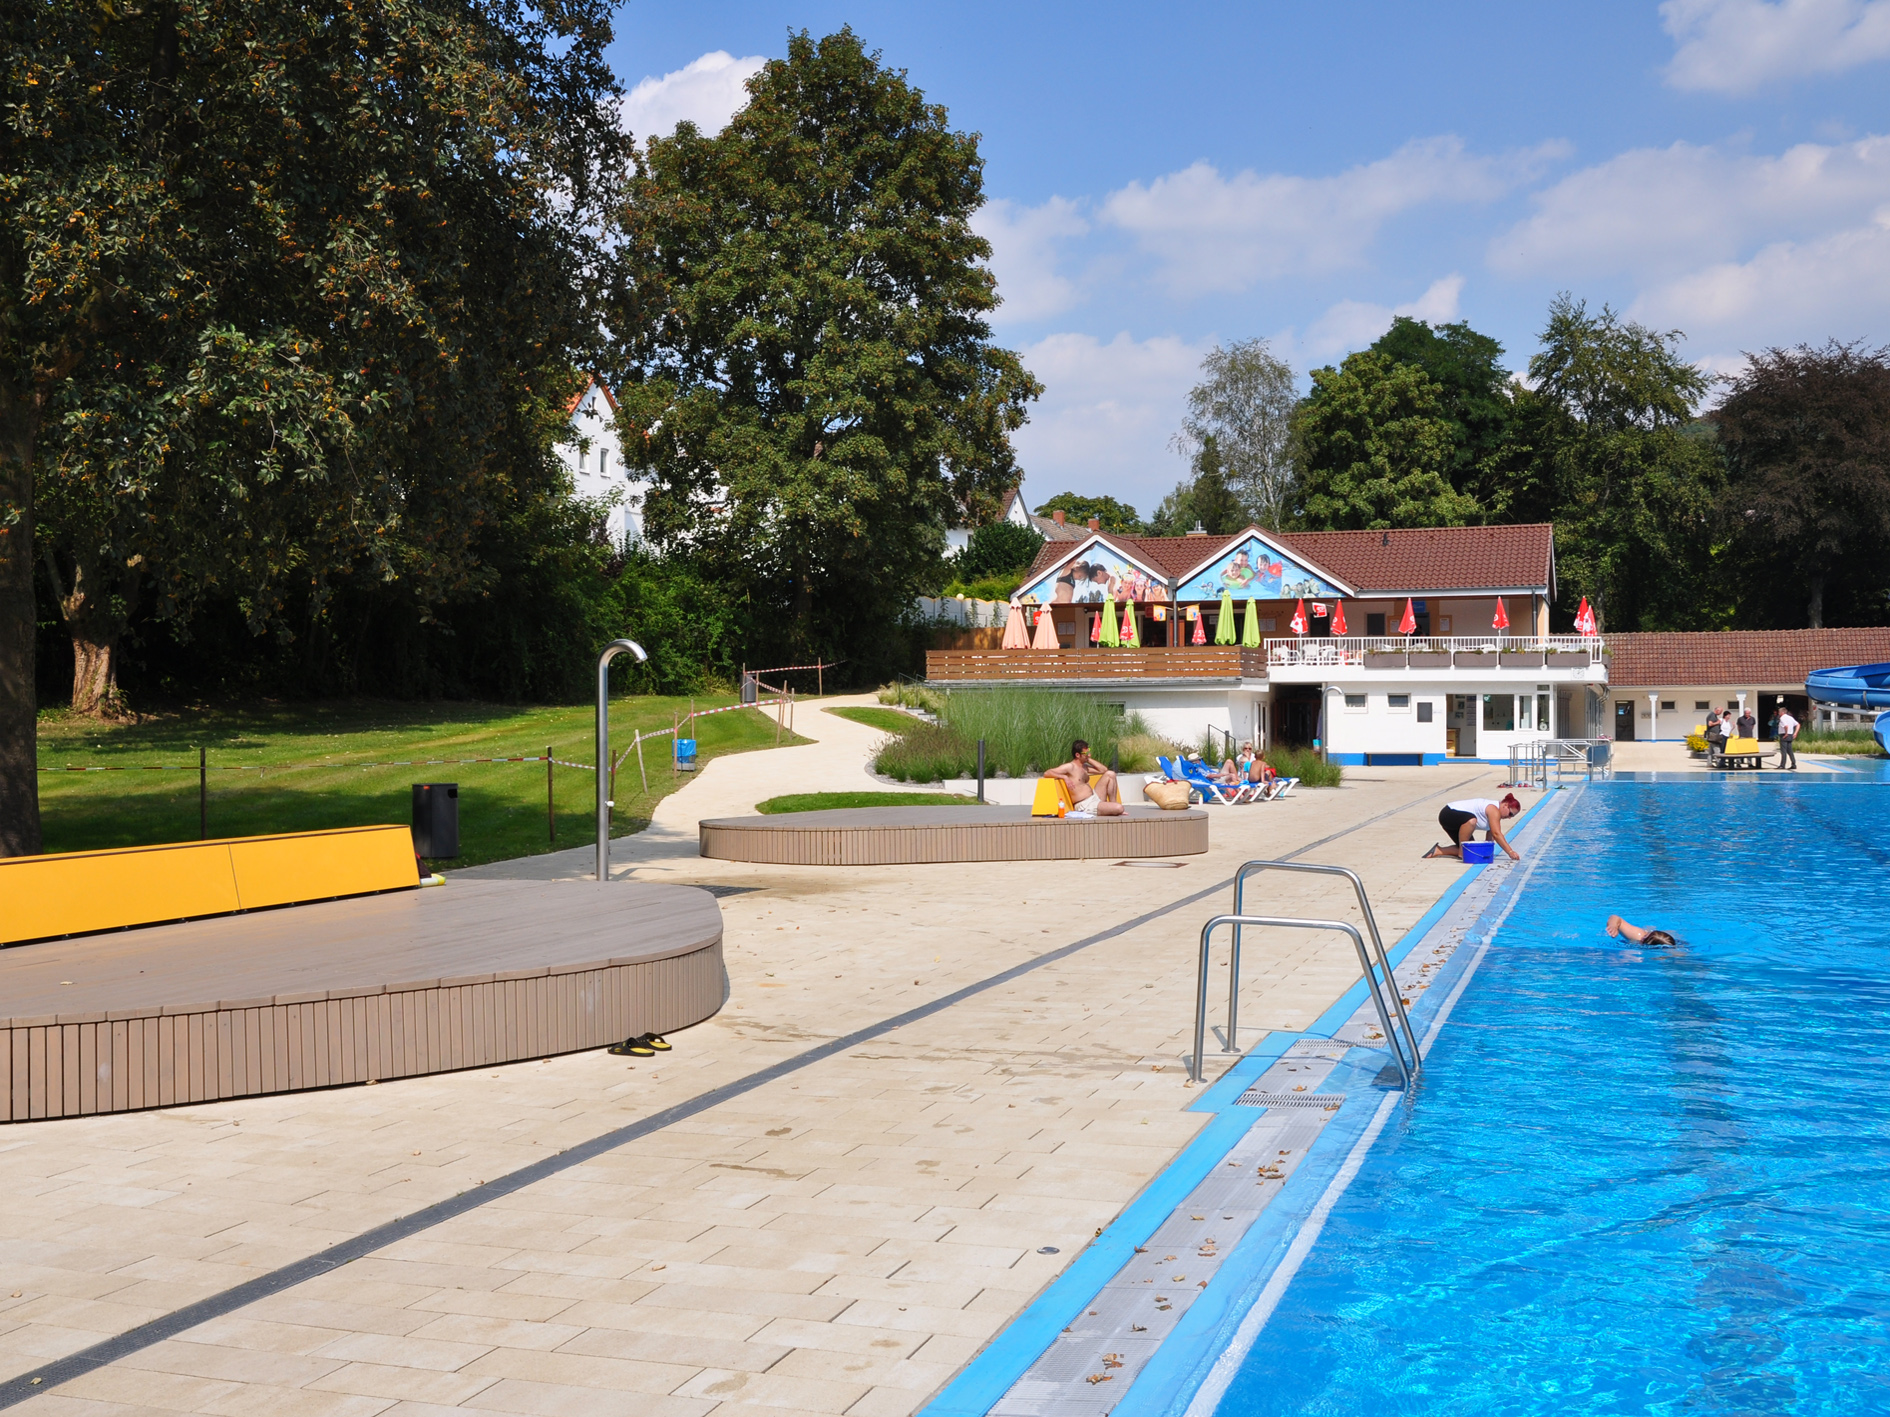 1511_Freibad_Bad_Salzdetfurth_5.jpg